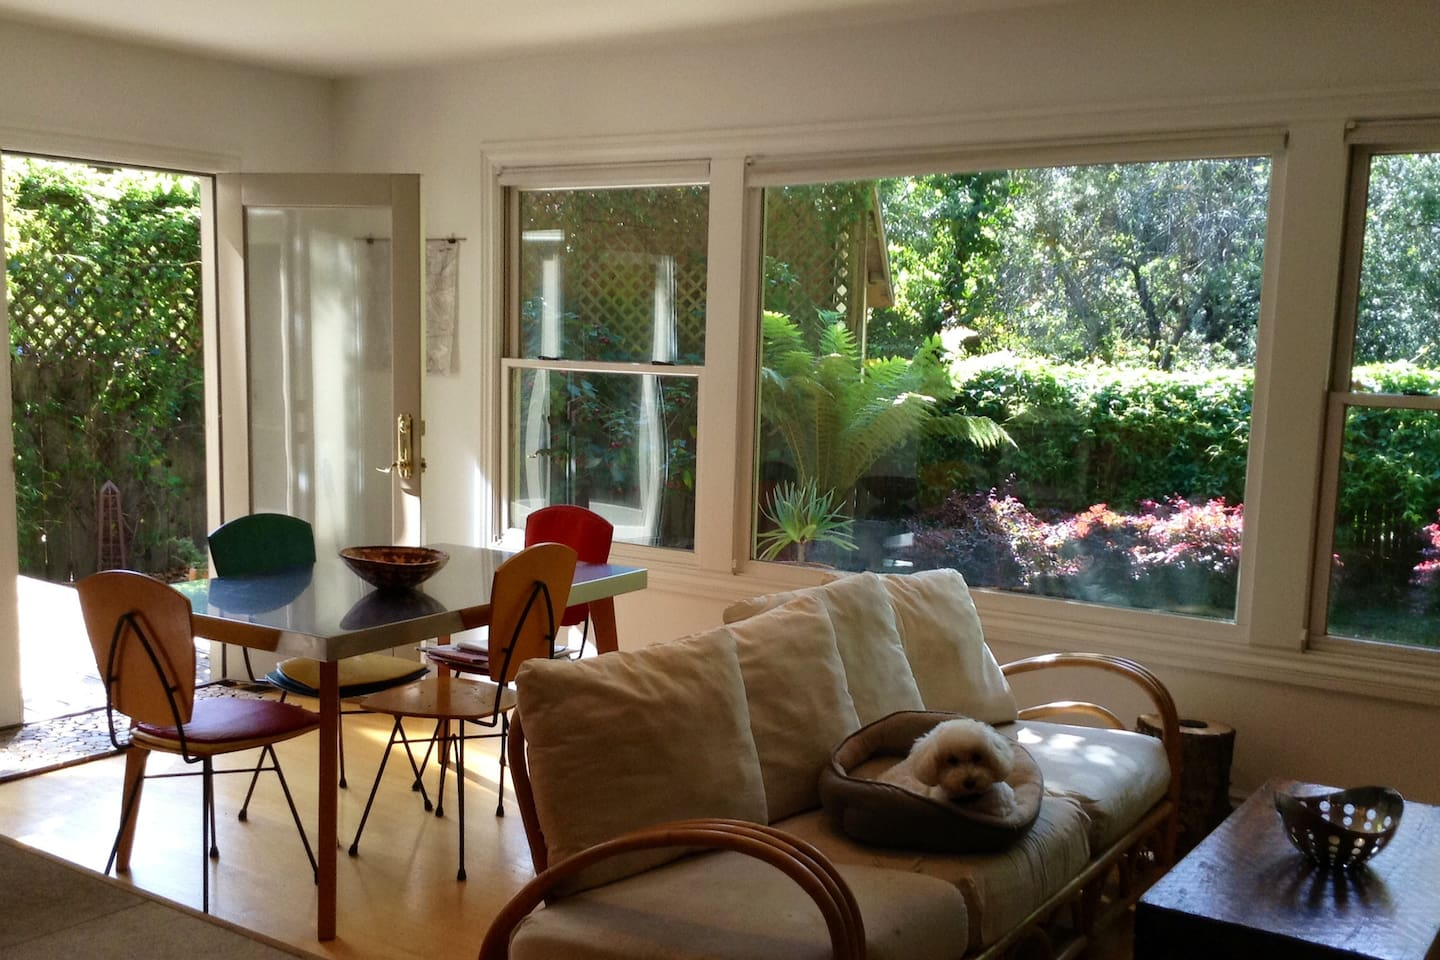 Lightfilled kitchen opens onto deck and back yard.